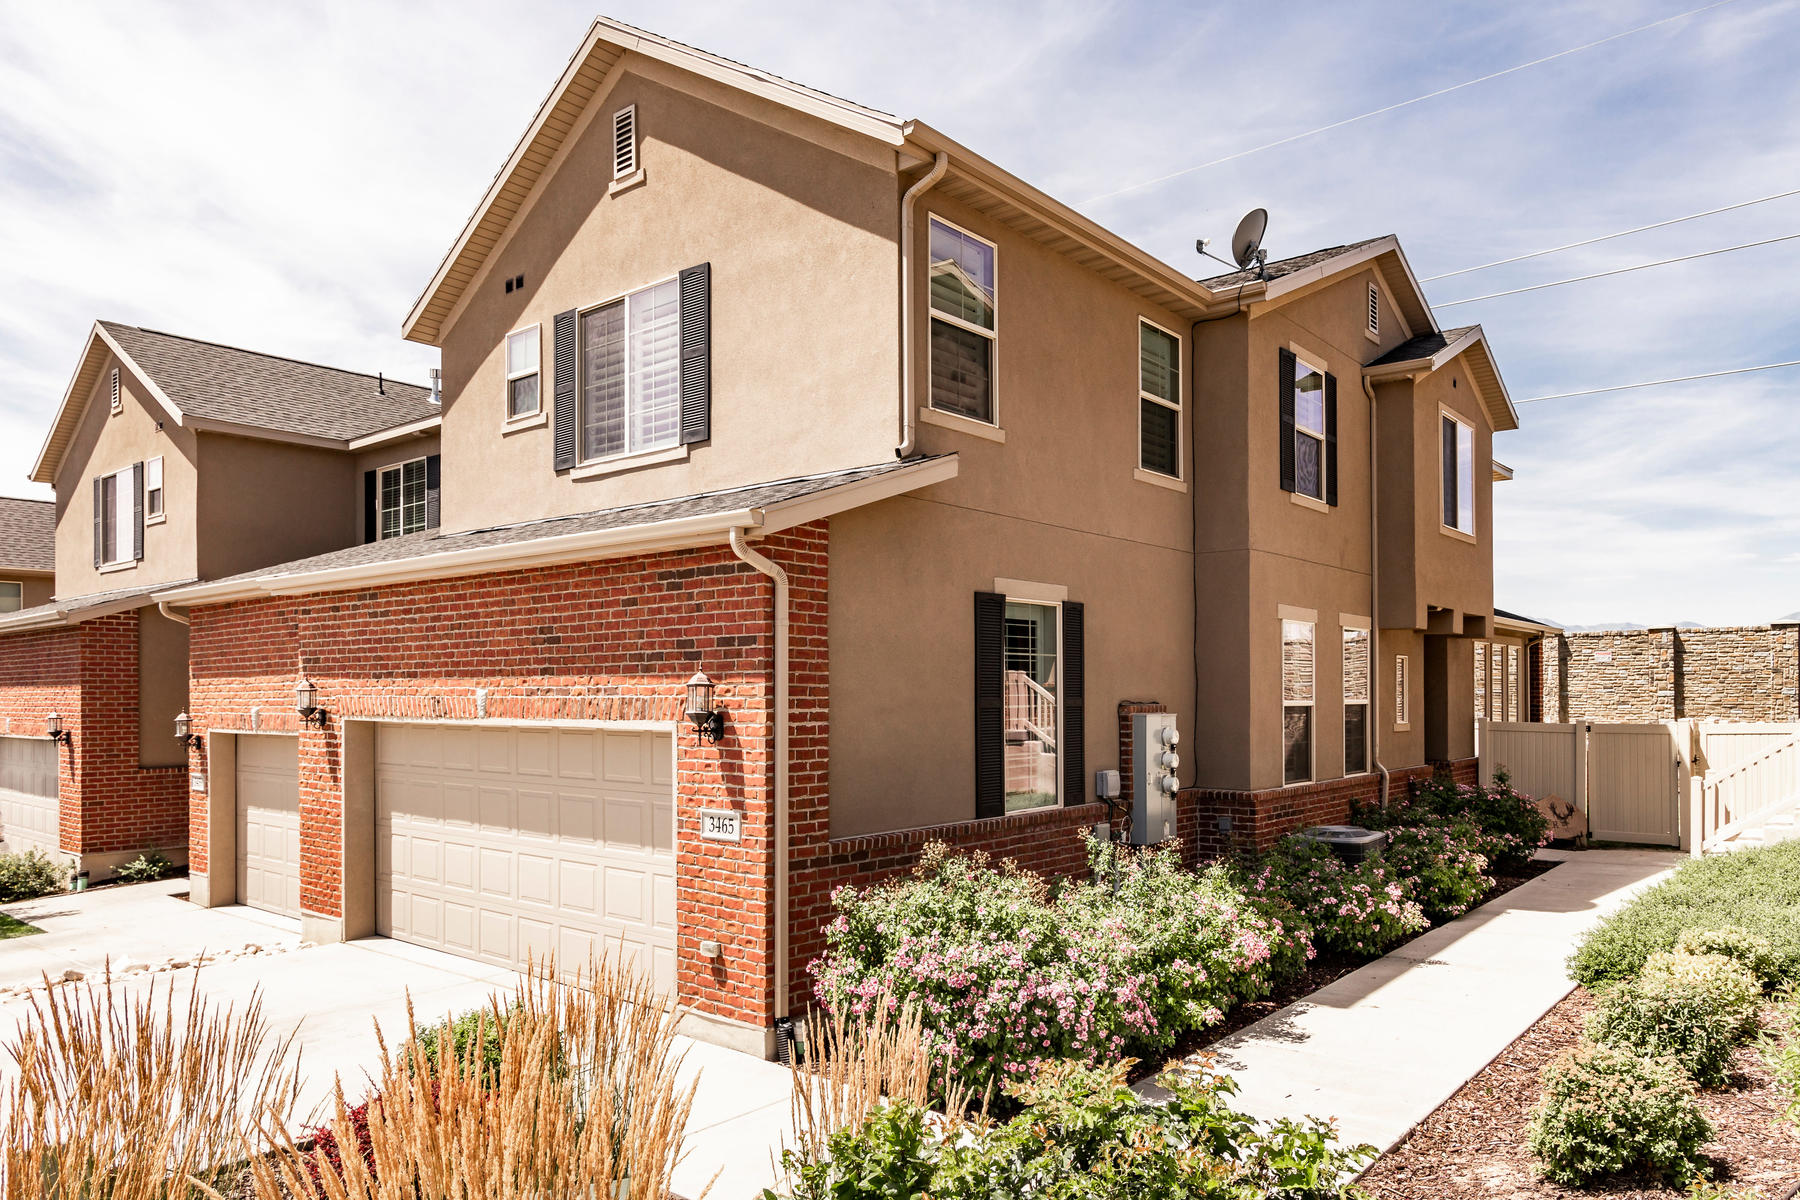 townhouses for Active at Loaded With Upgrades 3465 North 150 West Lehi, Utah 84043 United States